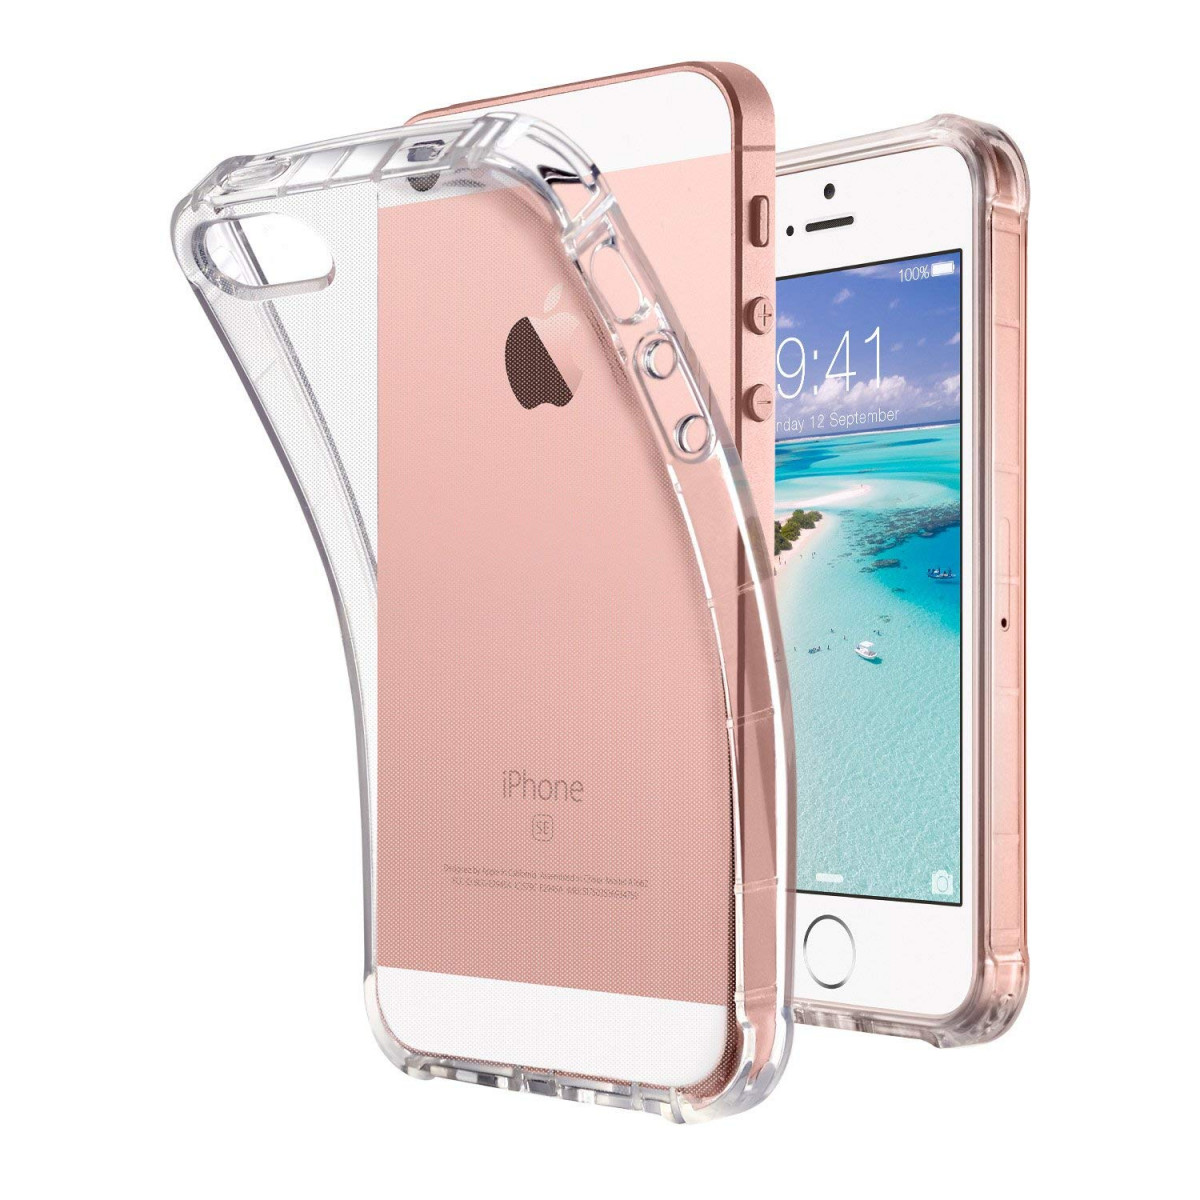 outlet store 345e2 f56c3 ULAK iPhone SE Case Clear, iPhone 5s case, iPhone 5 case, Clear Slim Fit  5/5S/SE Case with Transparent Flexible Soft TPU Bumper Shock-Absorption  Cover ...